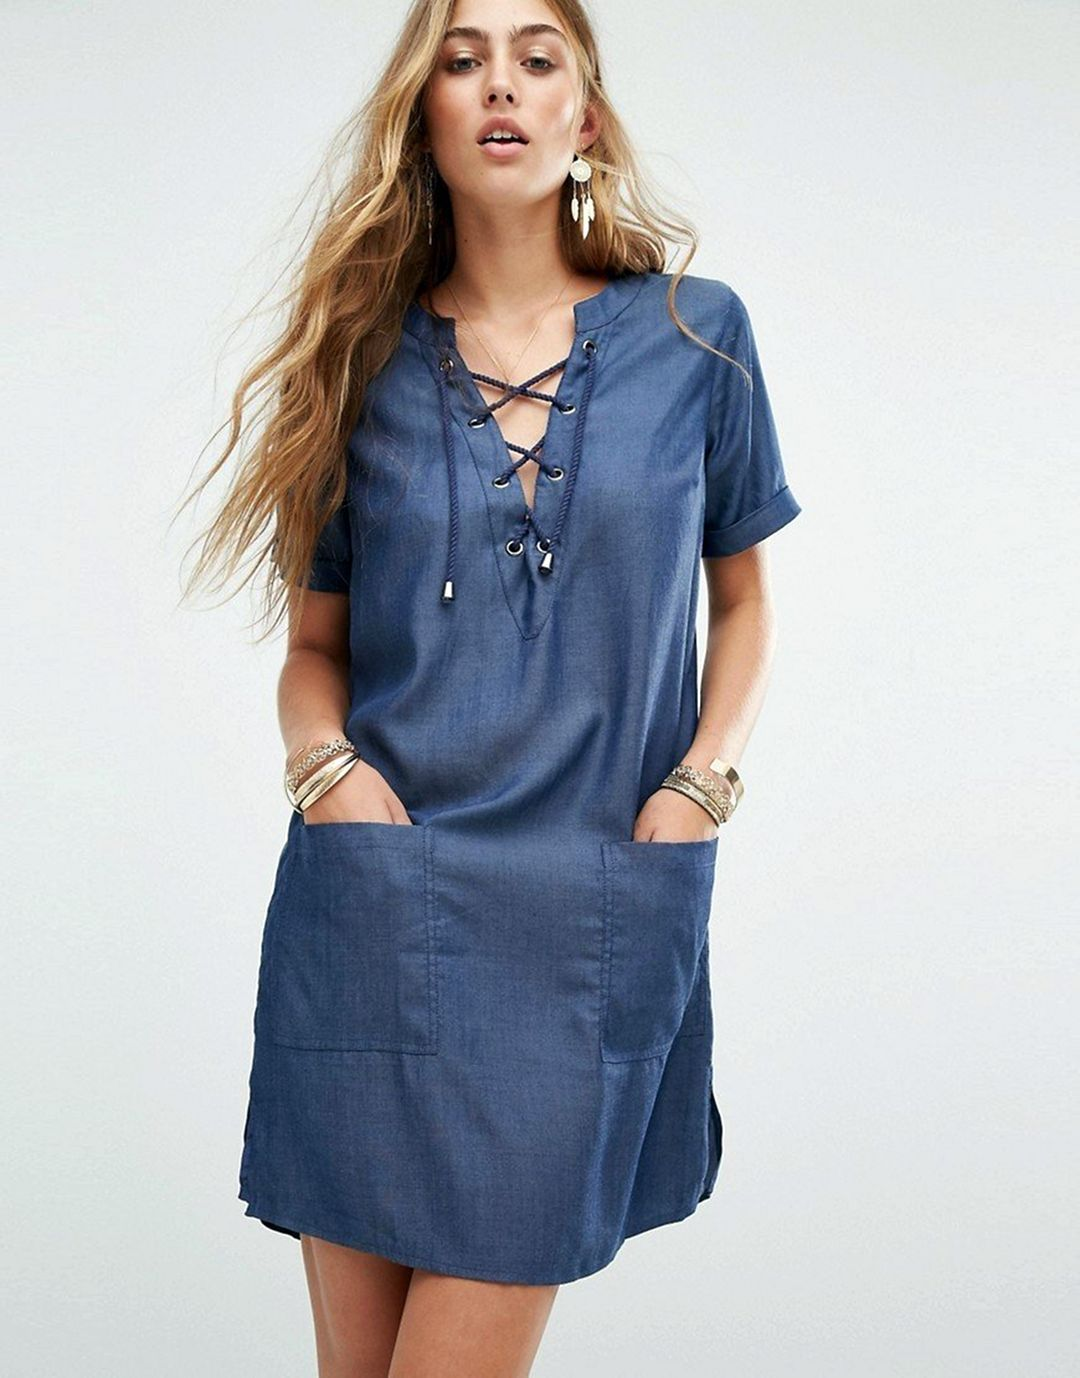 15 Beautiful Design For Casual Denim Dress That You Must Try In This Summer Fashions Nowadays Denim Dress Fashion Casual Denim Dress [ 1378 x 1080 Pixel ]